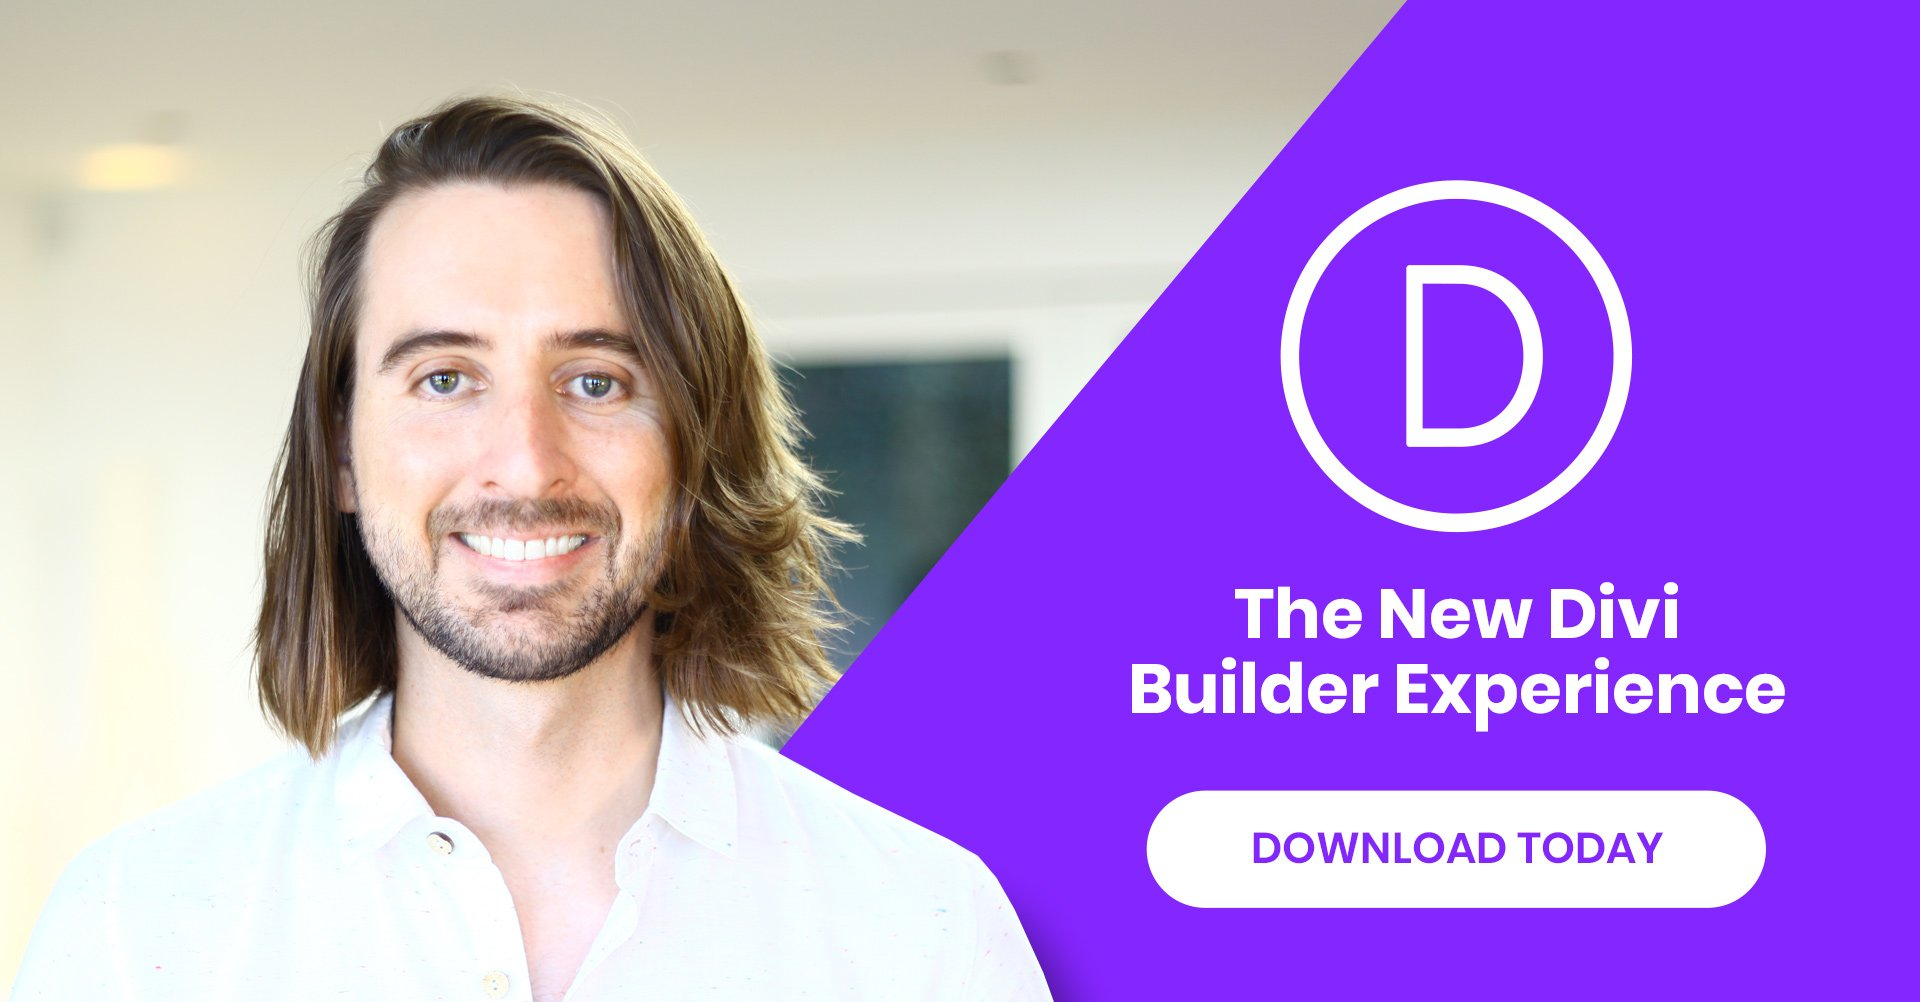 The New Divi Builder Experience